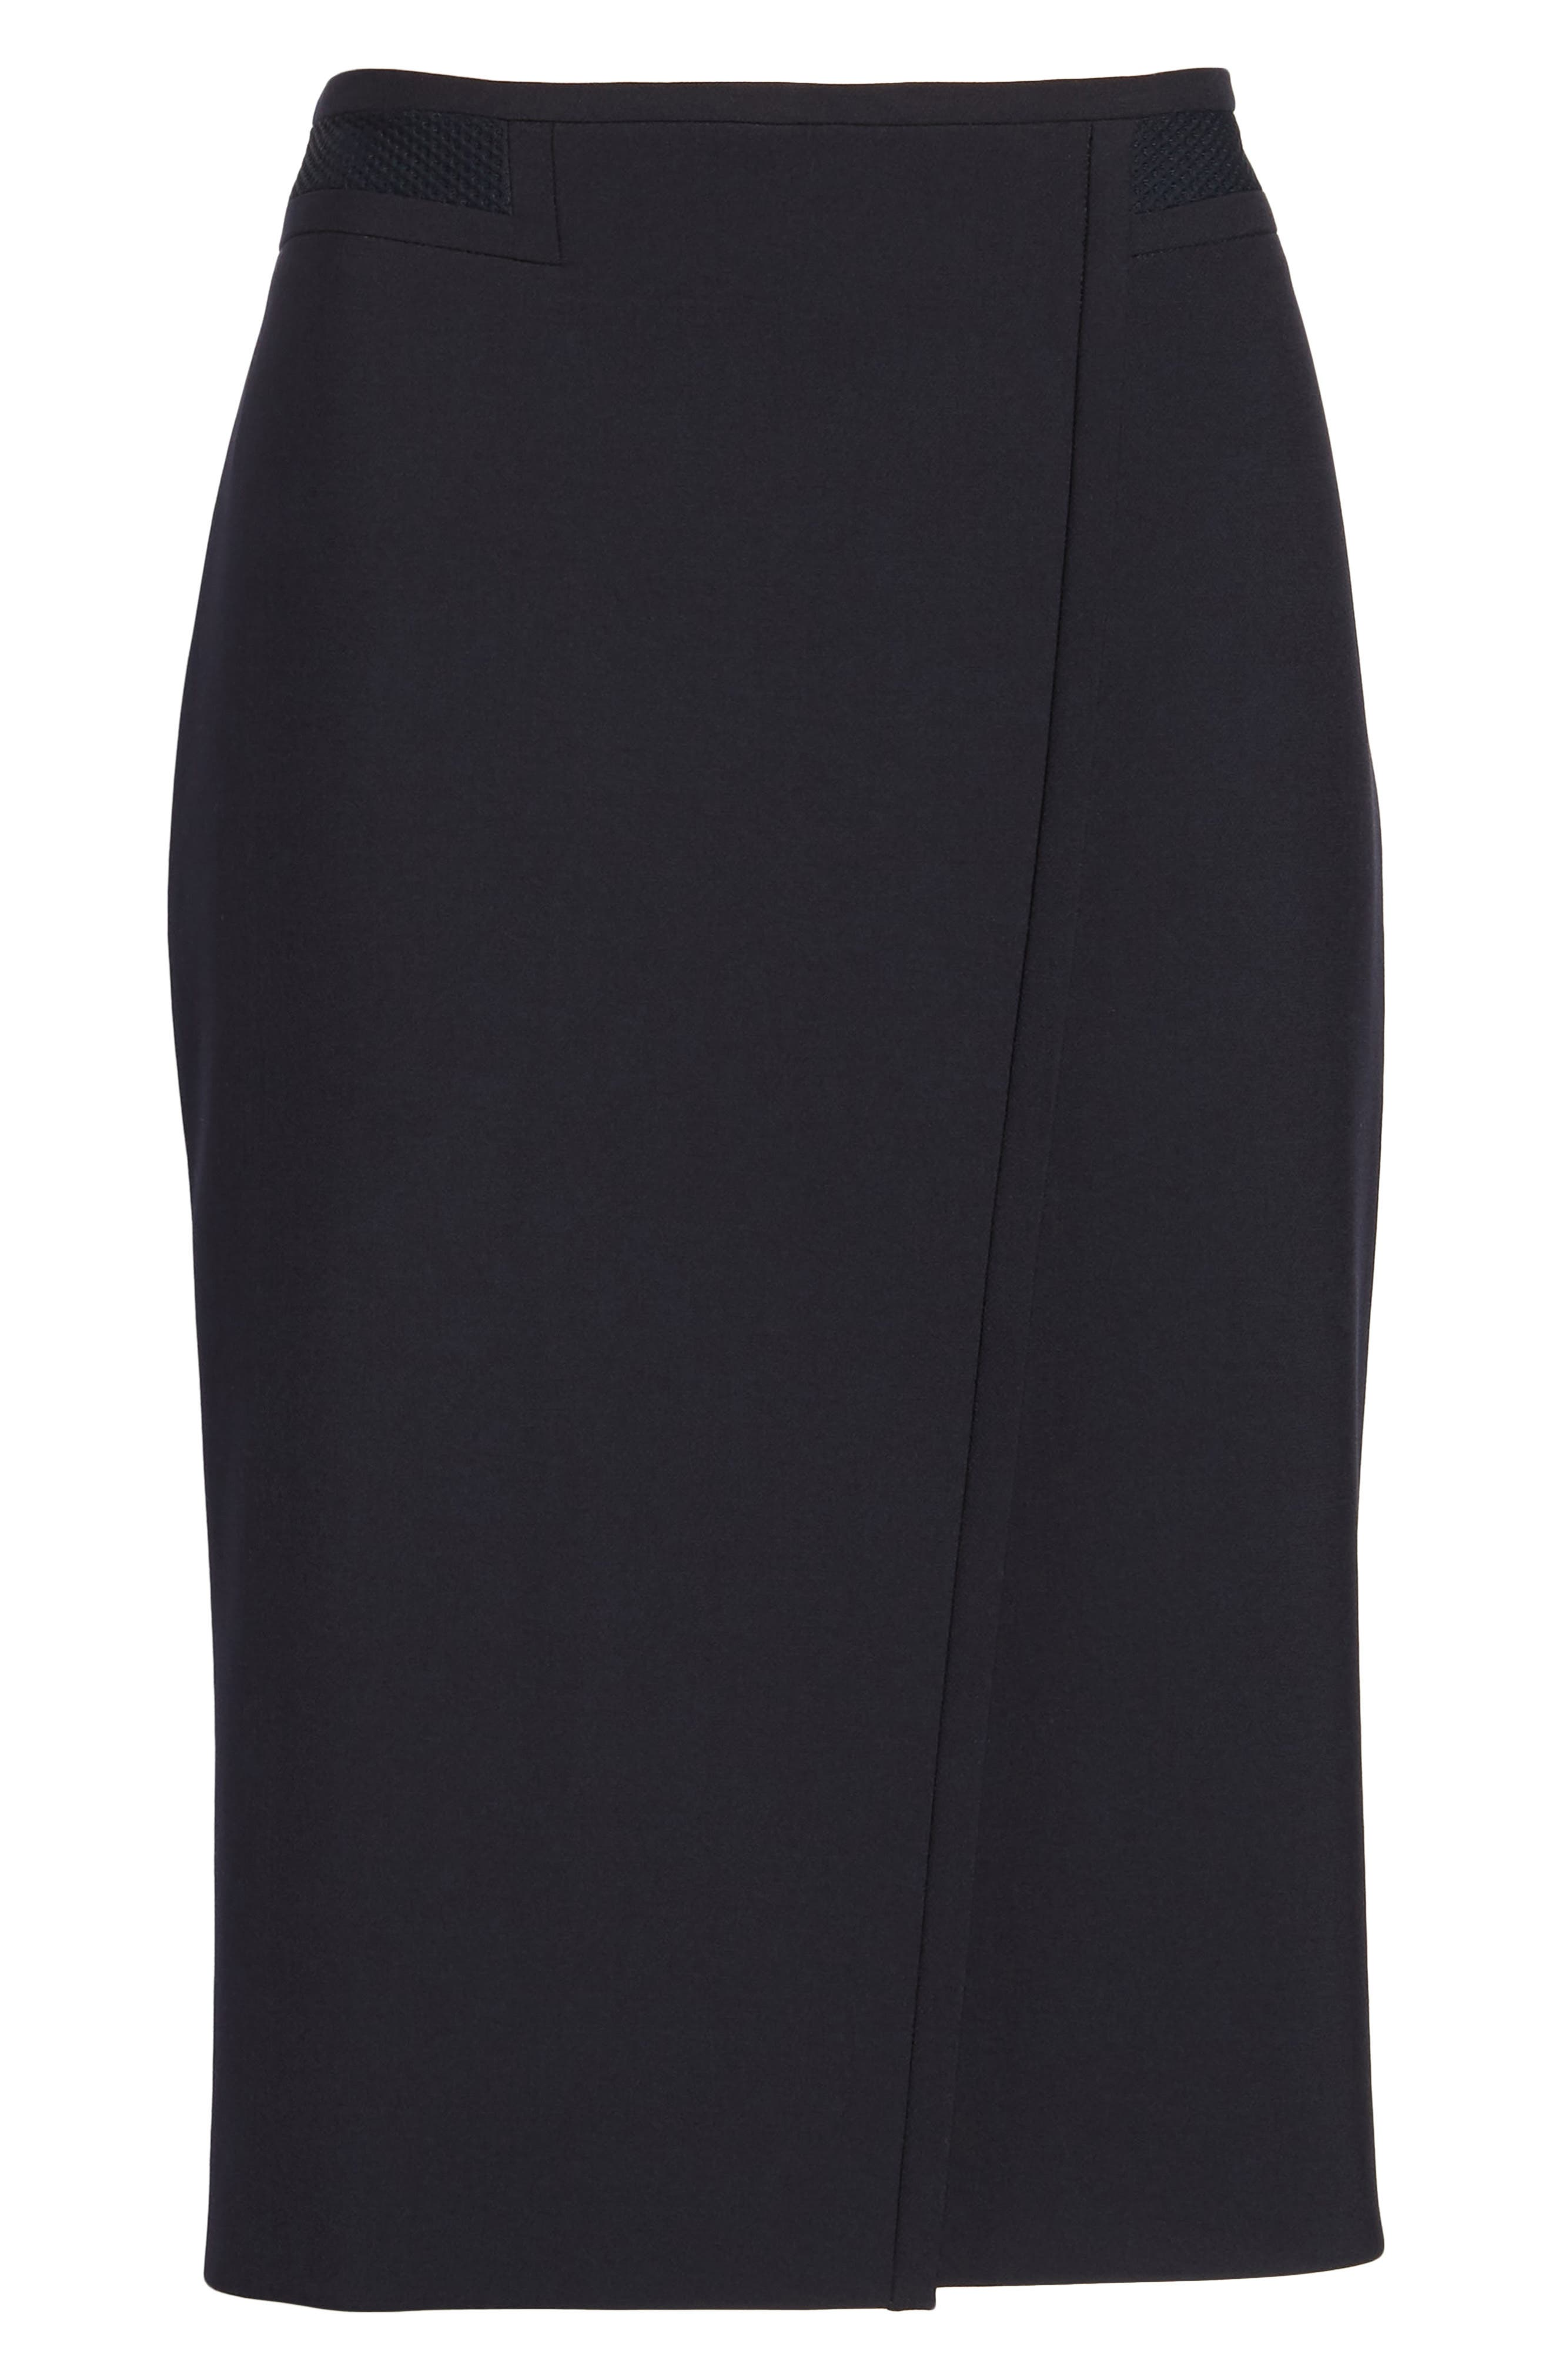 Vadama Ponte Pencil Skirt,                             Alternate thumbnail 6, color,                             Navy